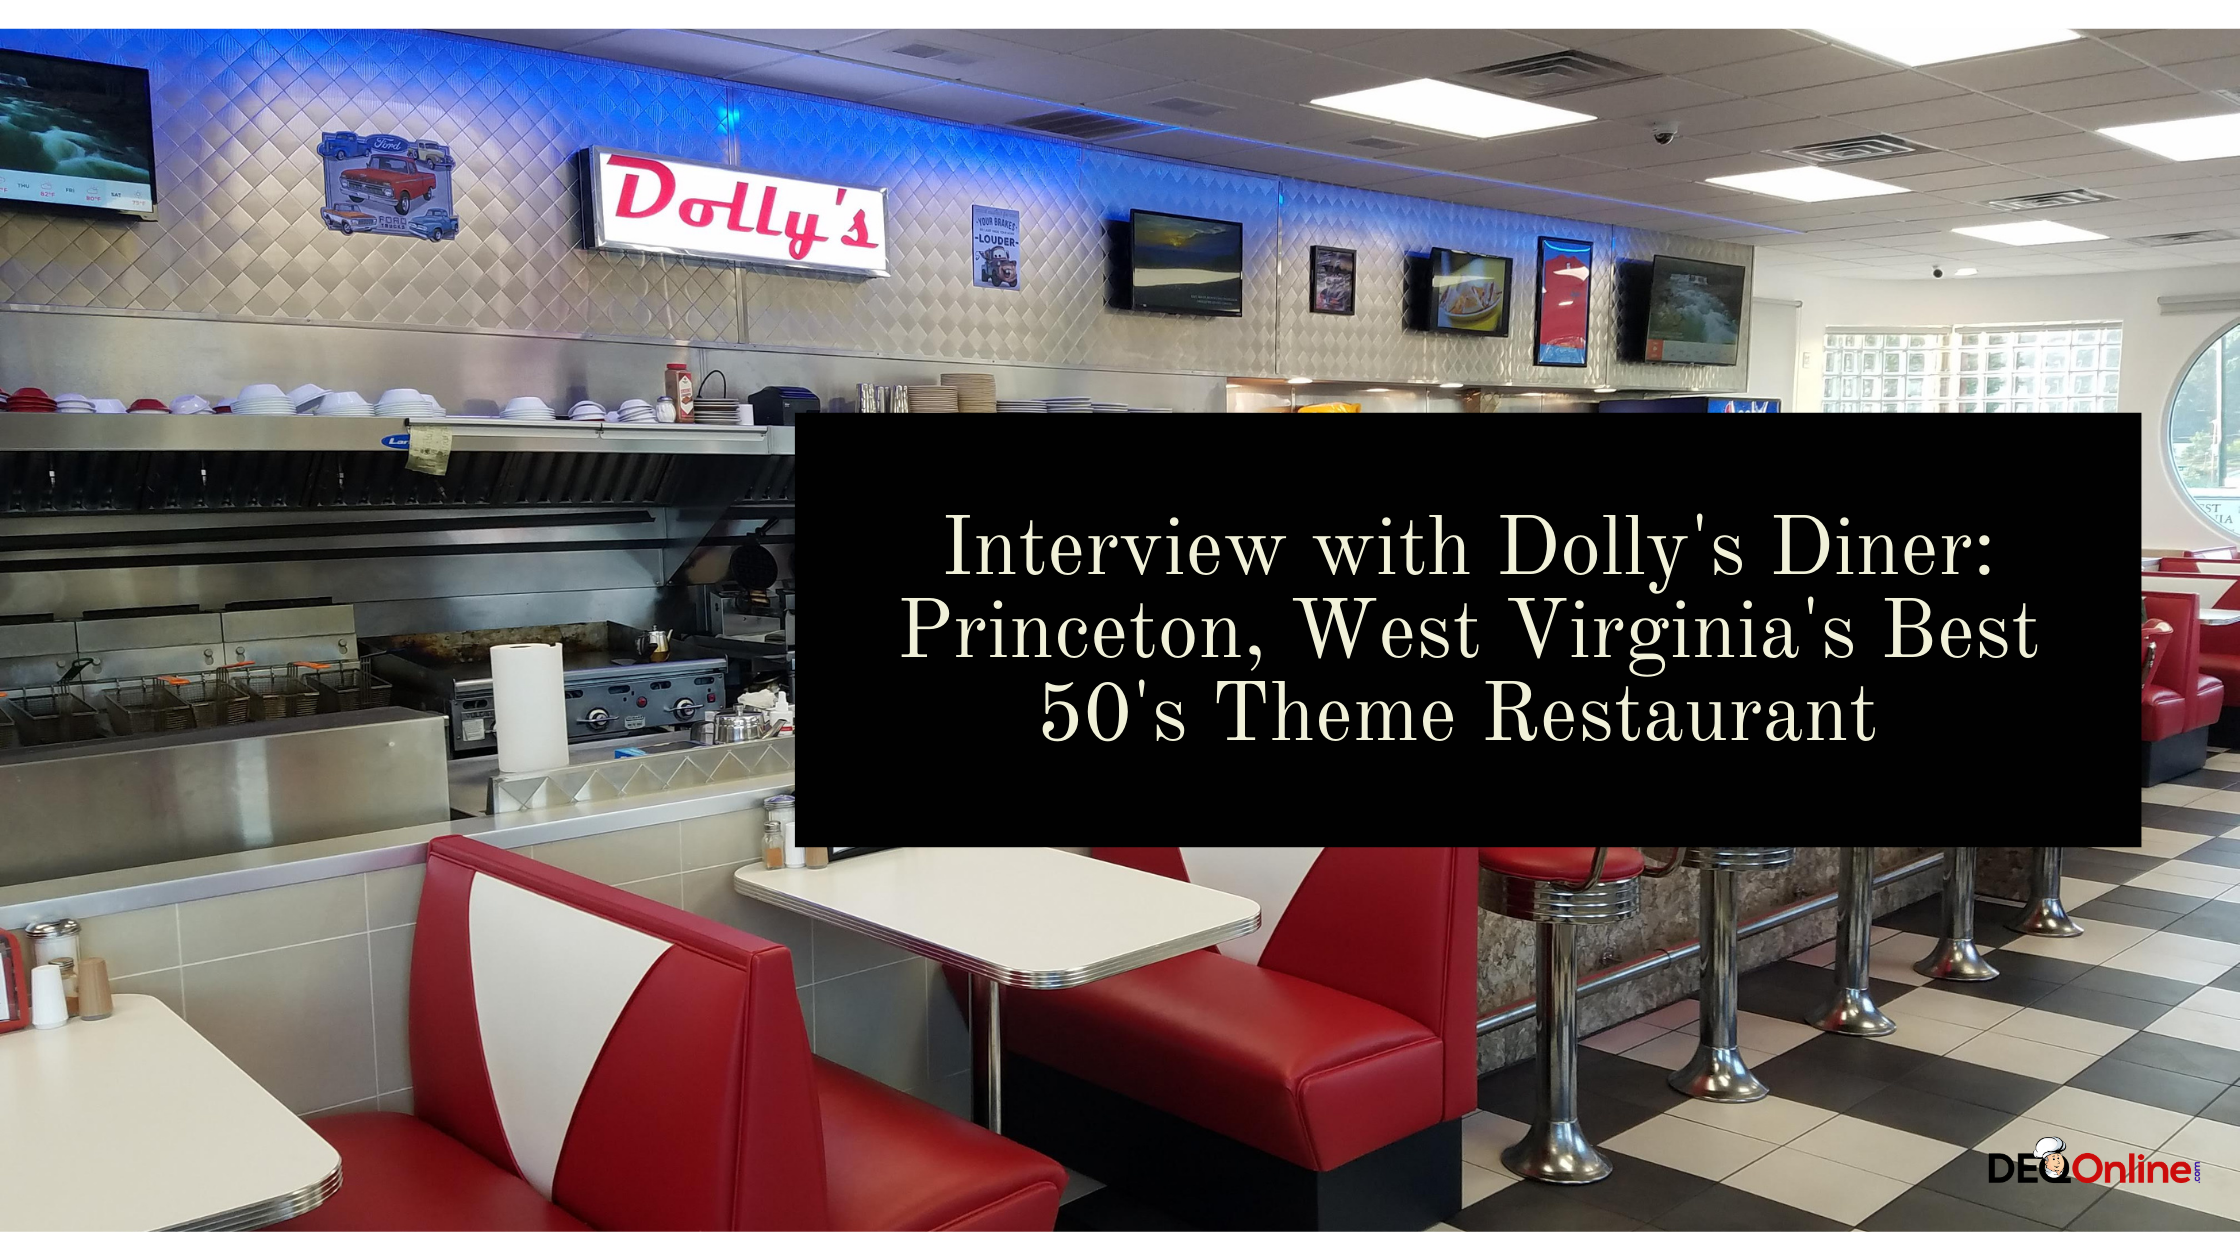 Interview with Dolly's Diner: Princeton, West Virginia's Best 50's Theme Restaurant